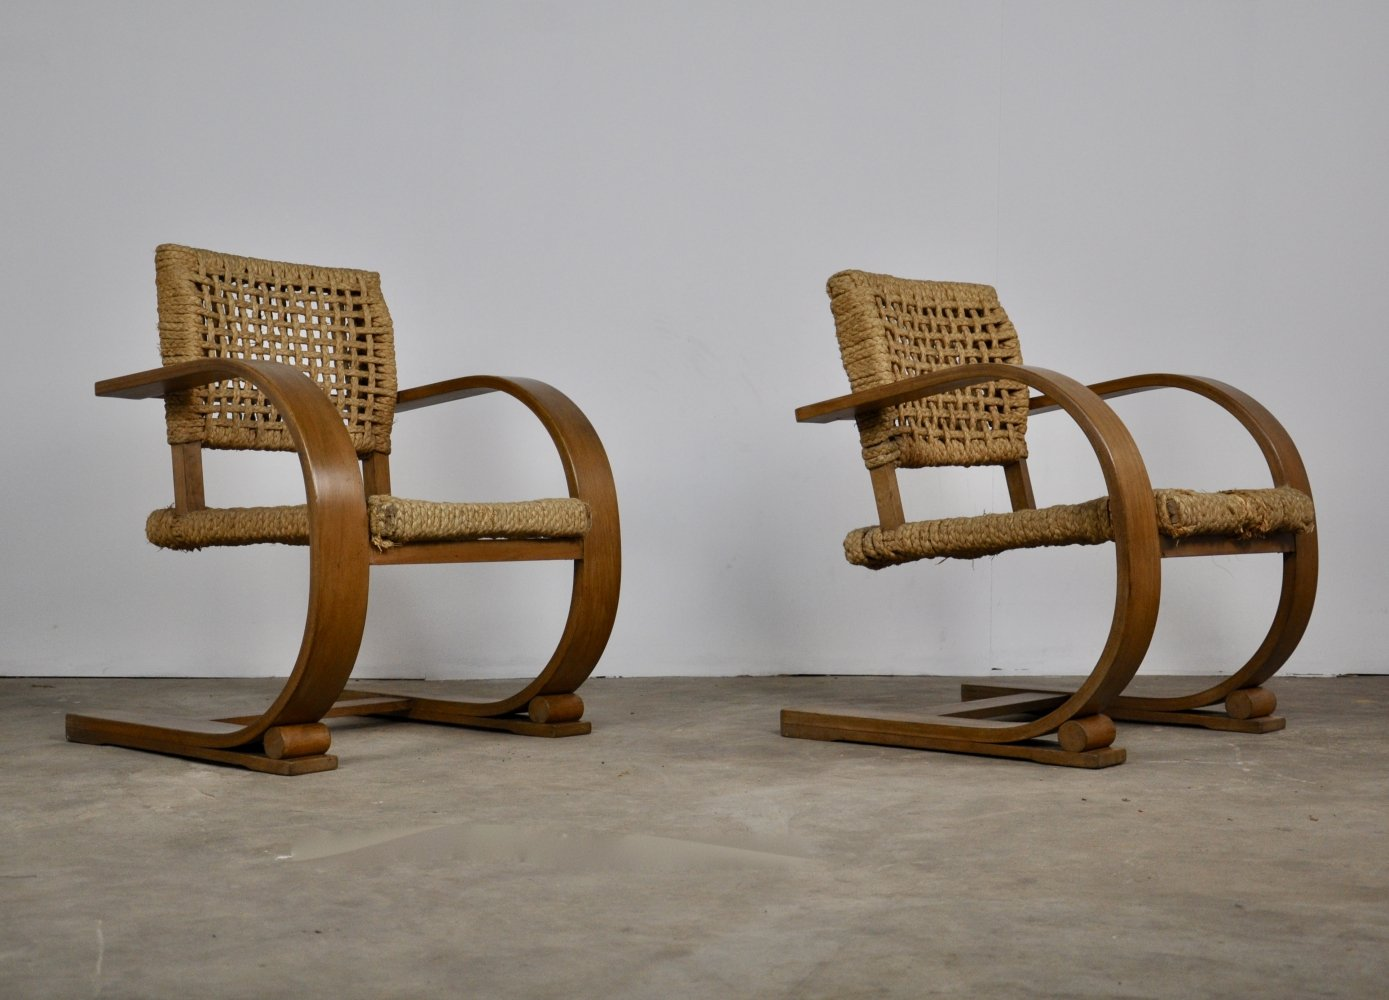 Pair of Lounge chairs by Audoux & Frida Minet for Vibo Vesoul, 1940s